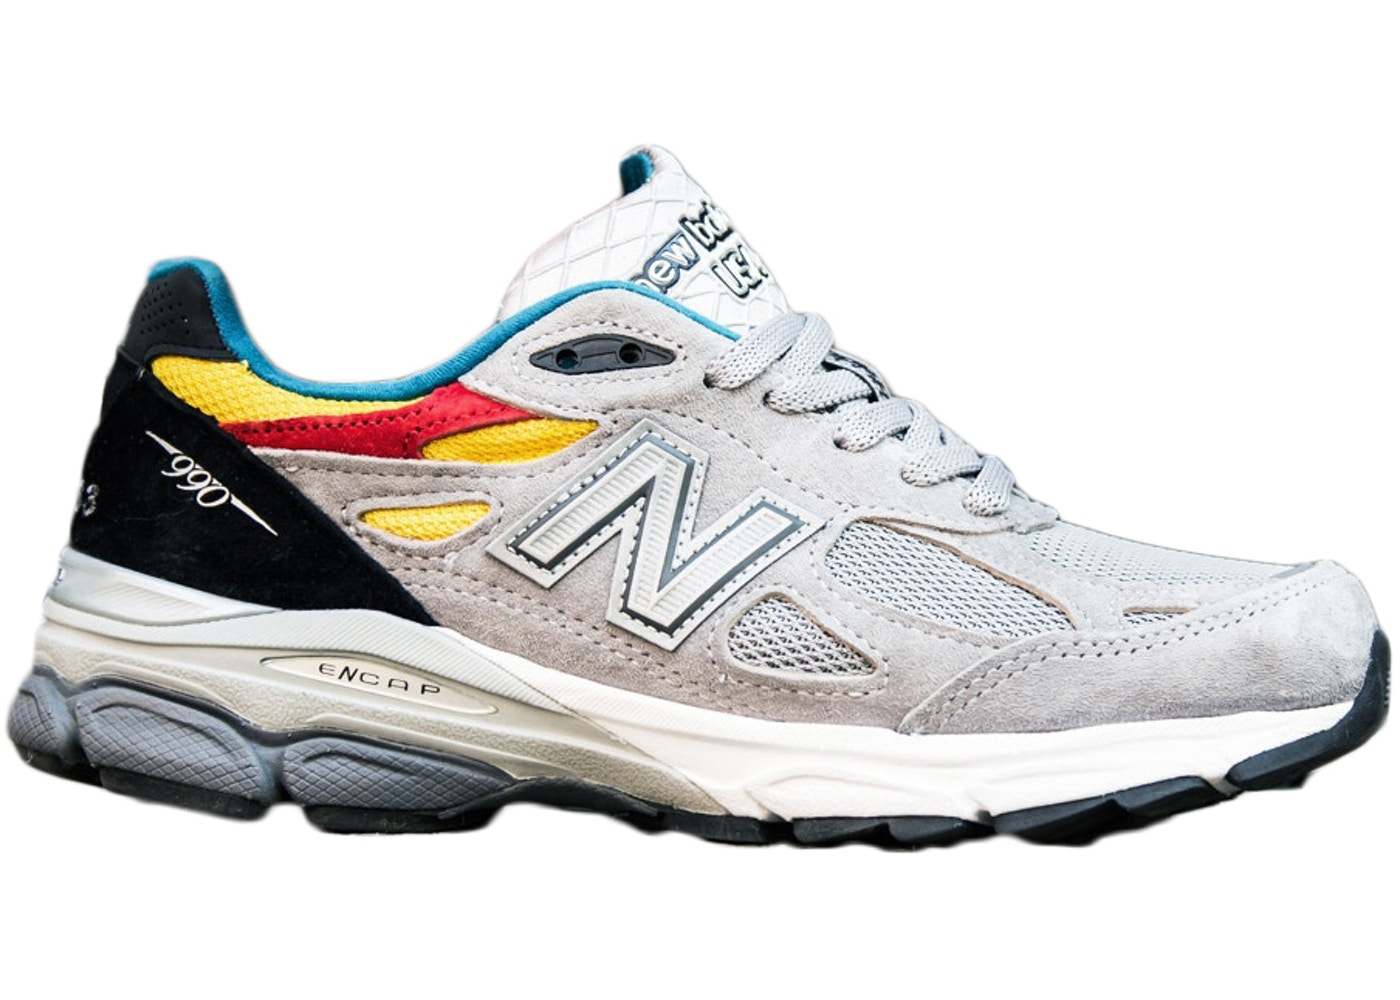 sale retailer 78921 f6e53 New Balance 990v3 Aries